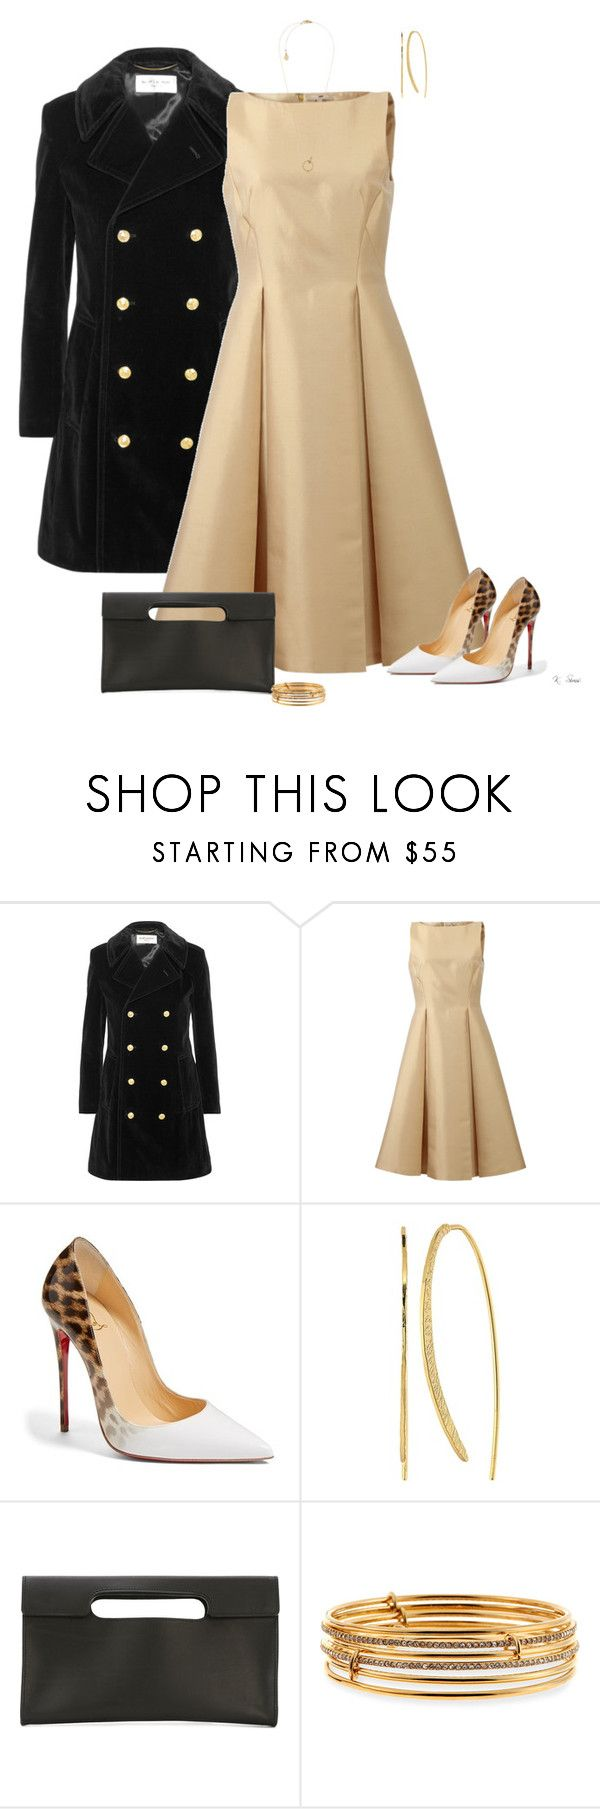 """Leopard"" by ksims-1 ❤ liked on Polyvore featuring Yves Saint Laurent, Michael Kors, Christian Louboutin, Gorjana, Isaac Reina and Kate Spade"